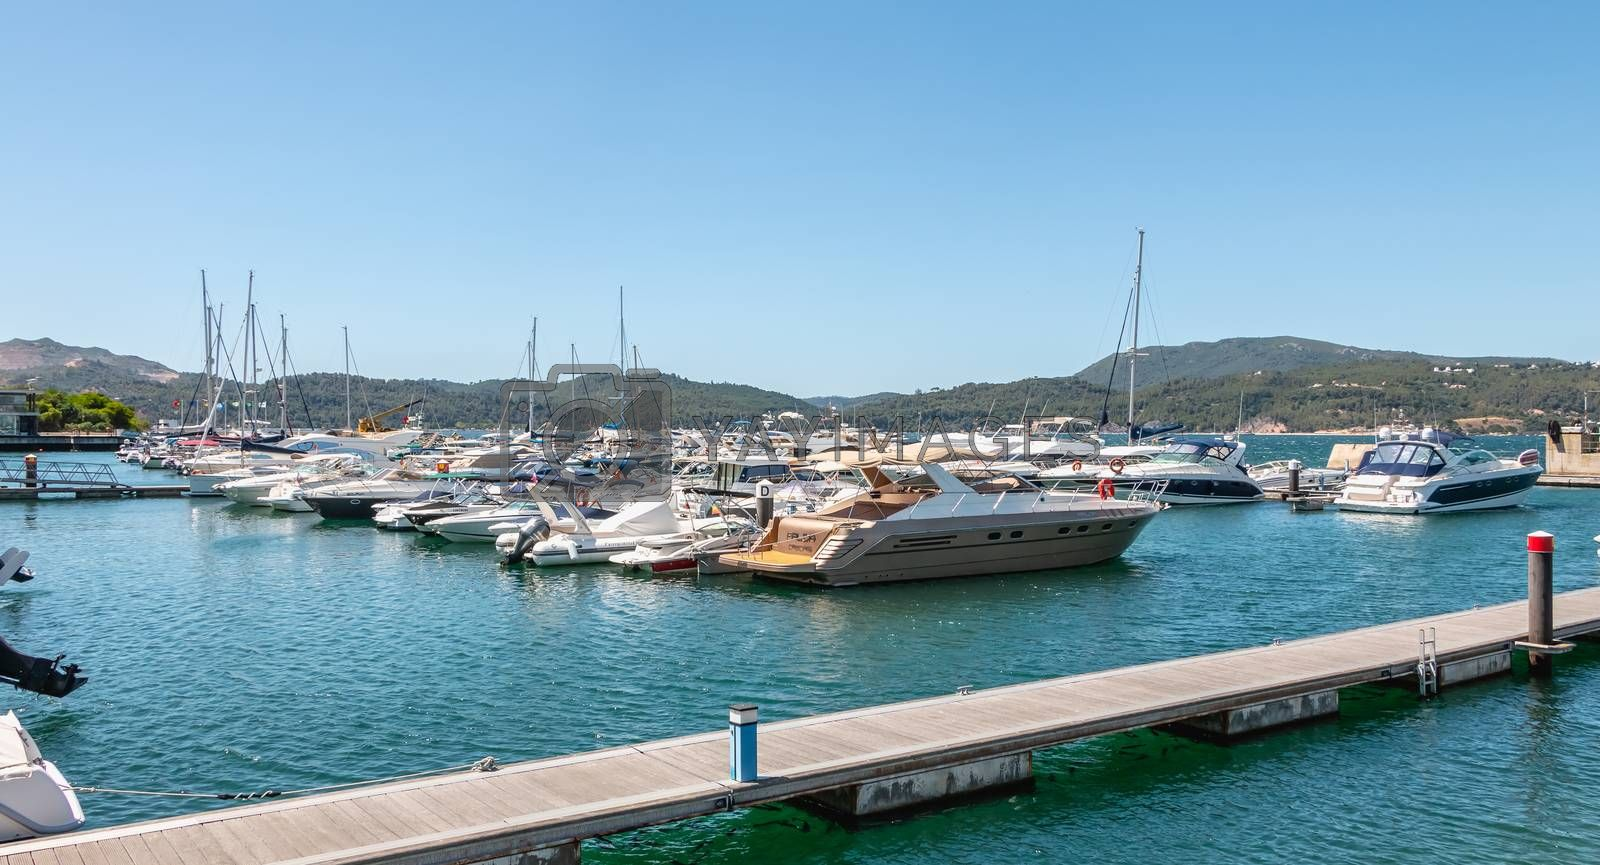 Troia, Portugal - August 9, 2018: View of the Troia Marina with its luxurious boats on a summer day